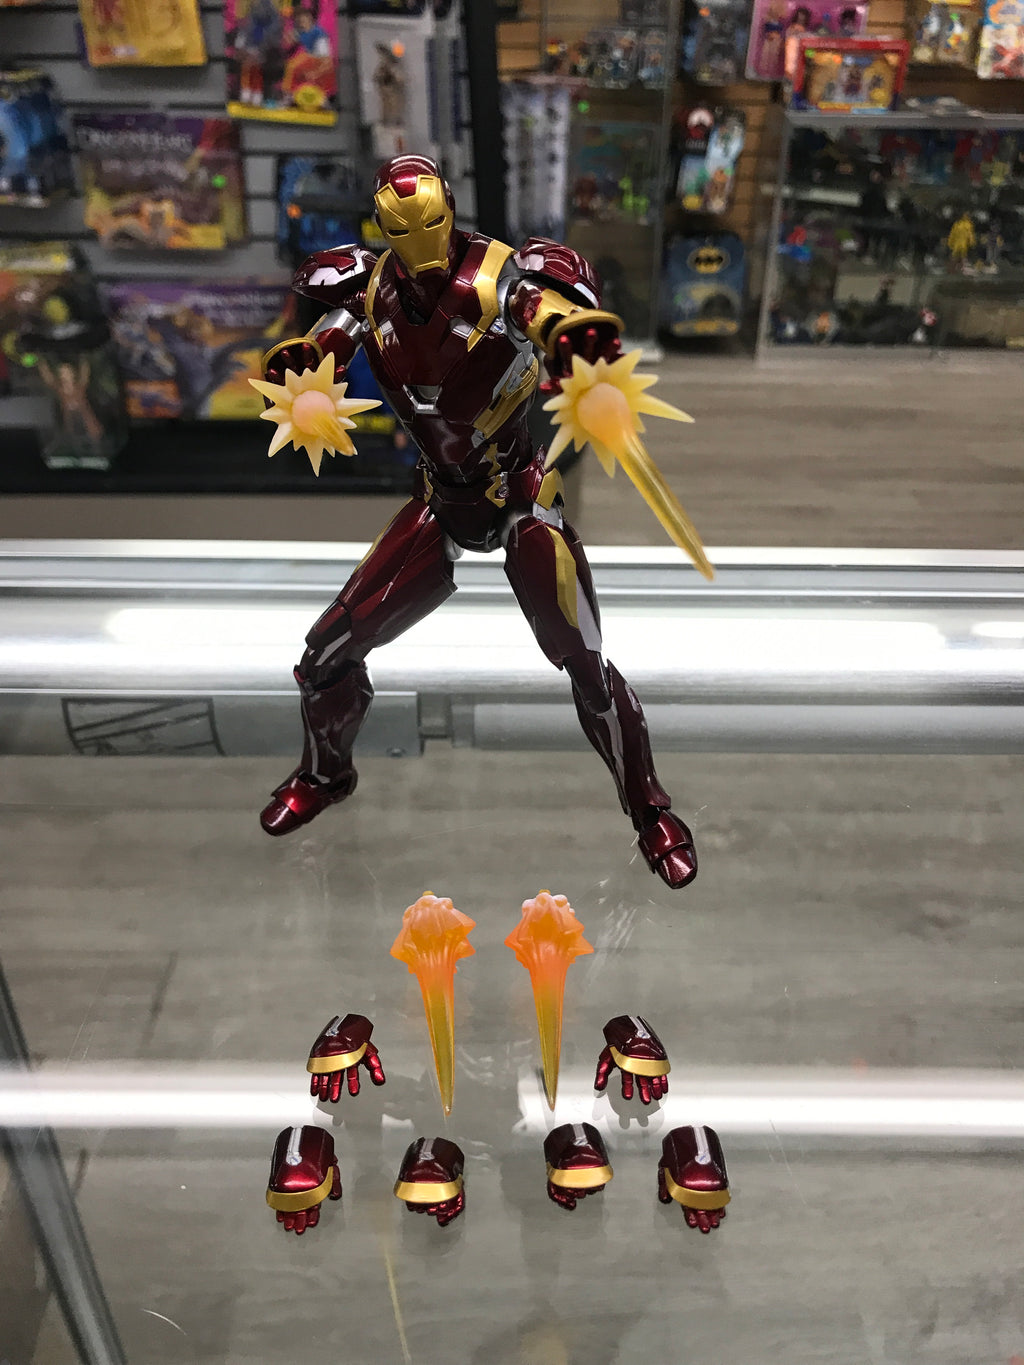 S.H.Figuarts Captain America Civil War Iron Man MK-46